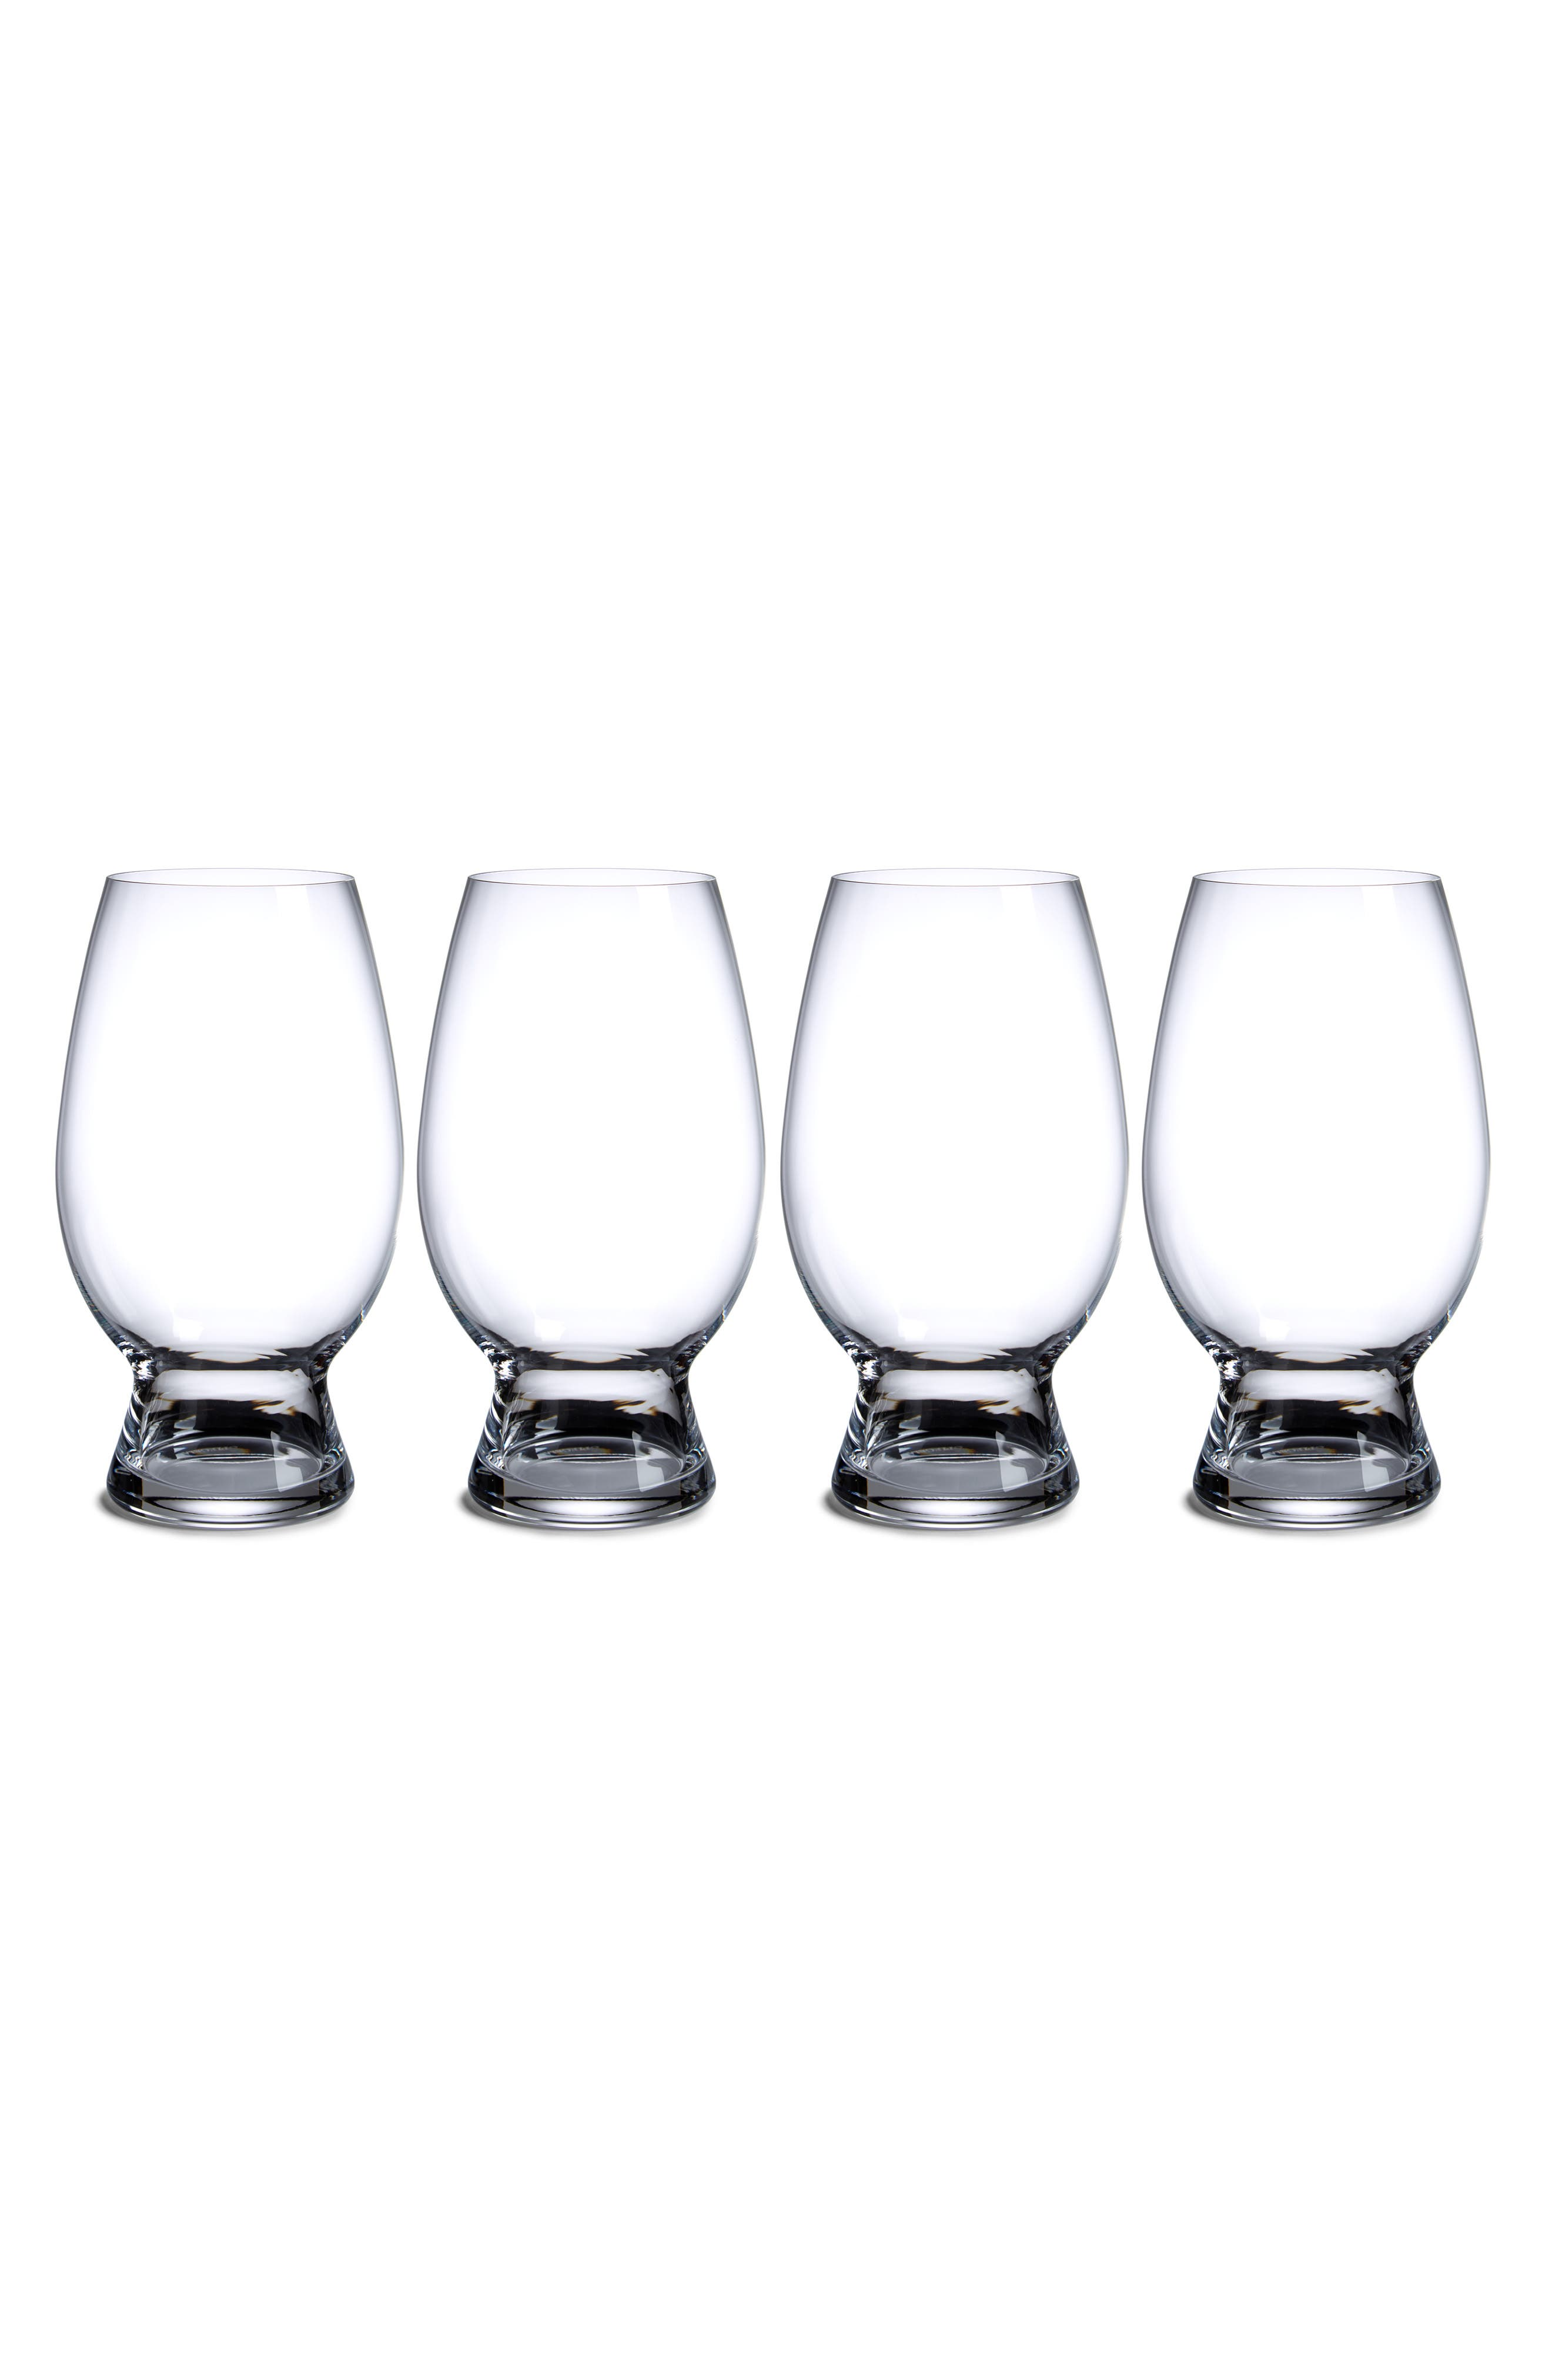 Set of 4 American Wheat Beer Glasses,                             Main thumbnail 1, color,                             100